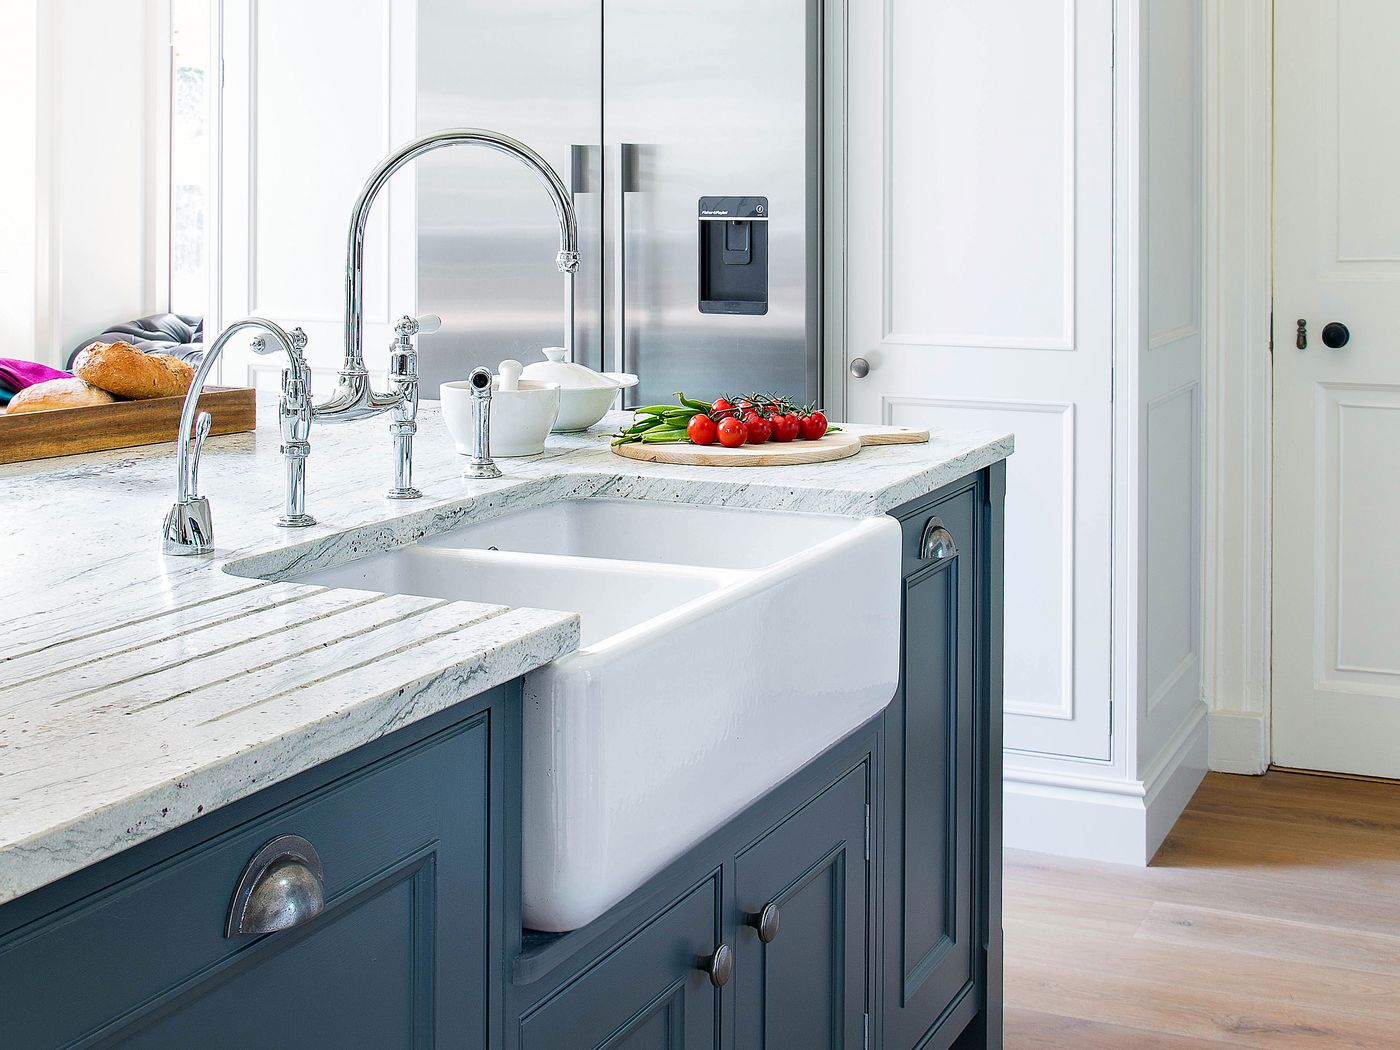 How To Paint Kitchen Cabinets In 9 Steps This Old House